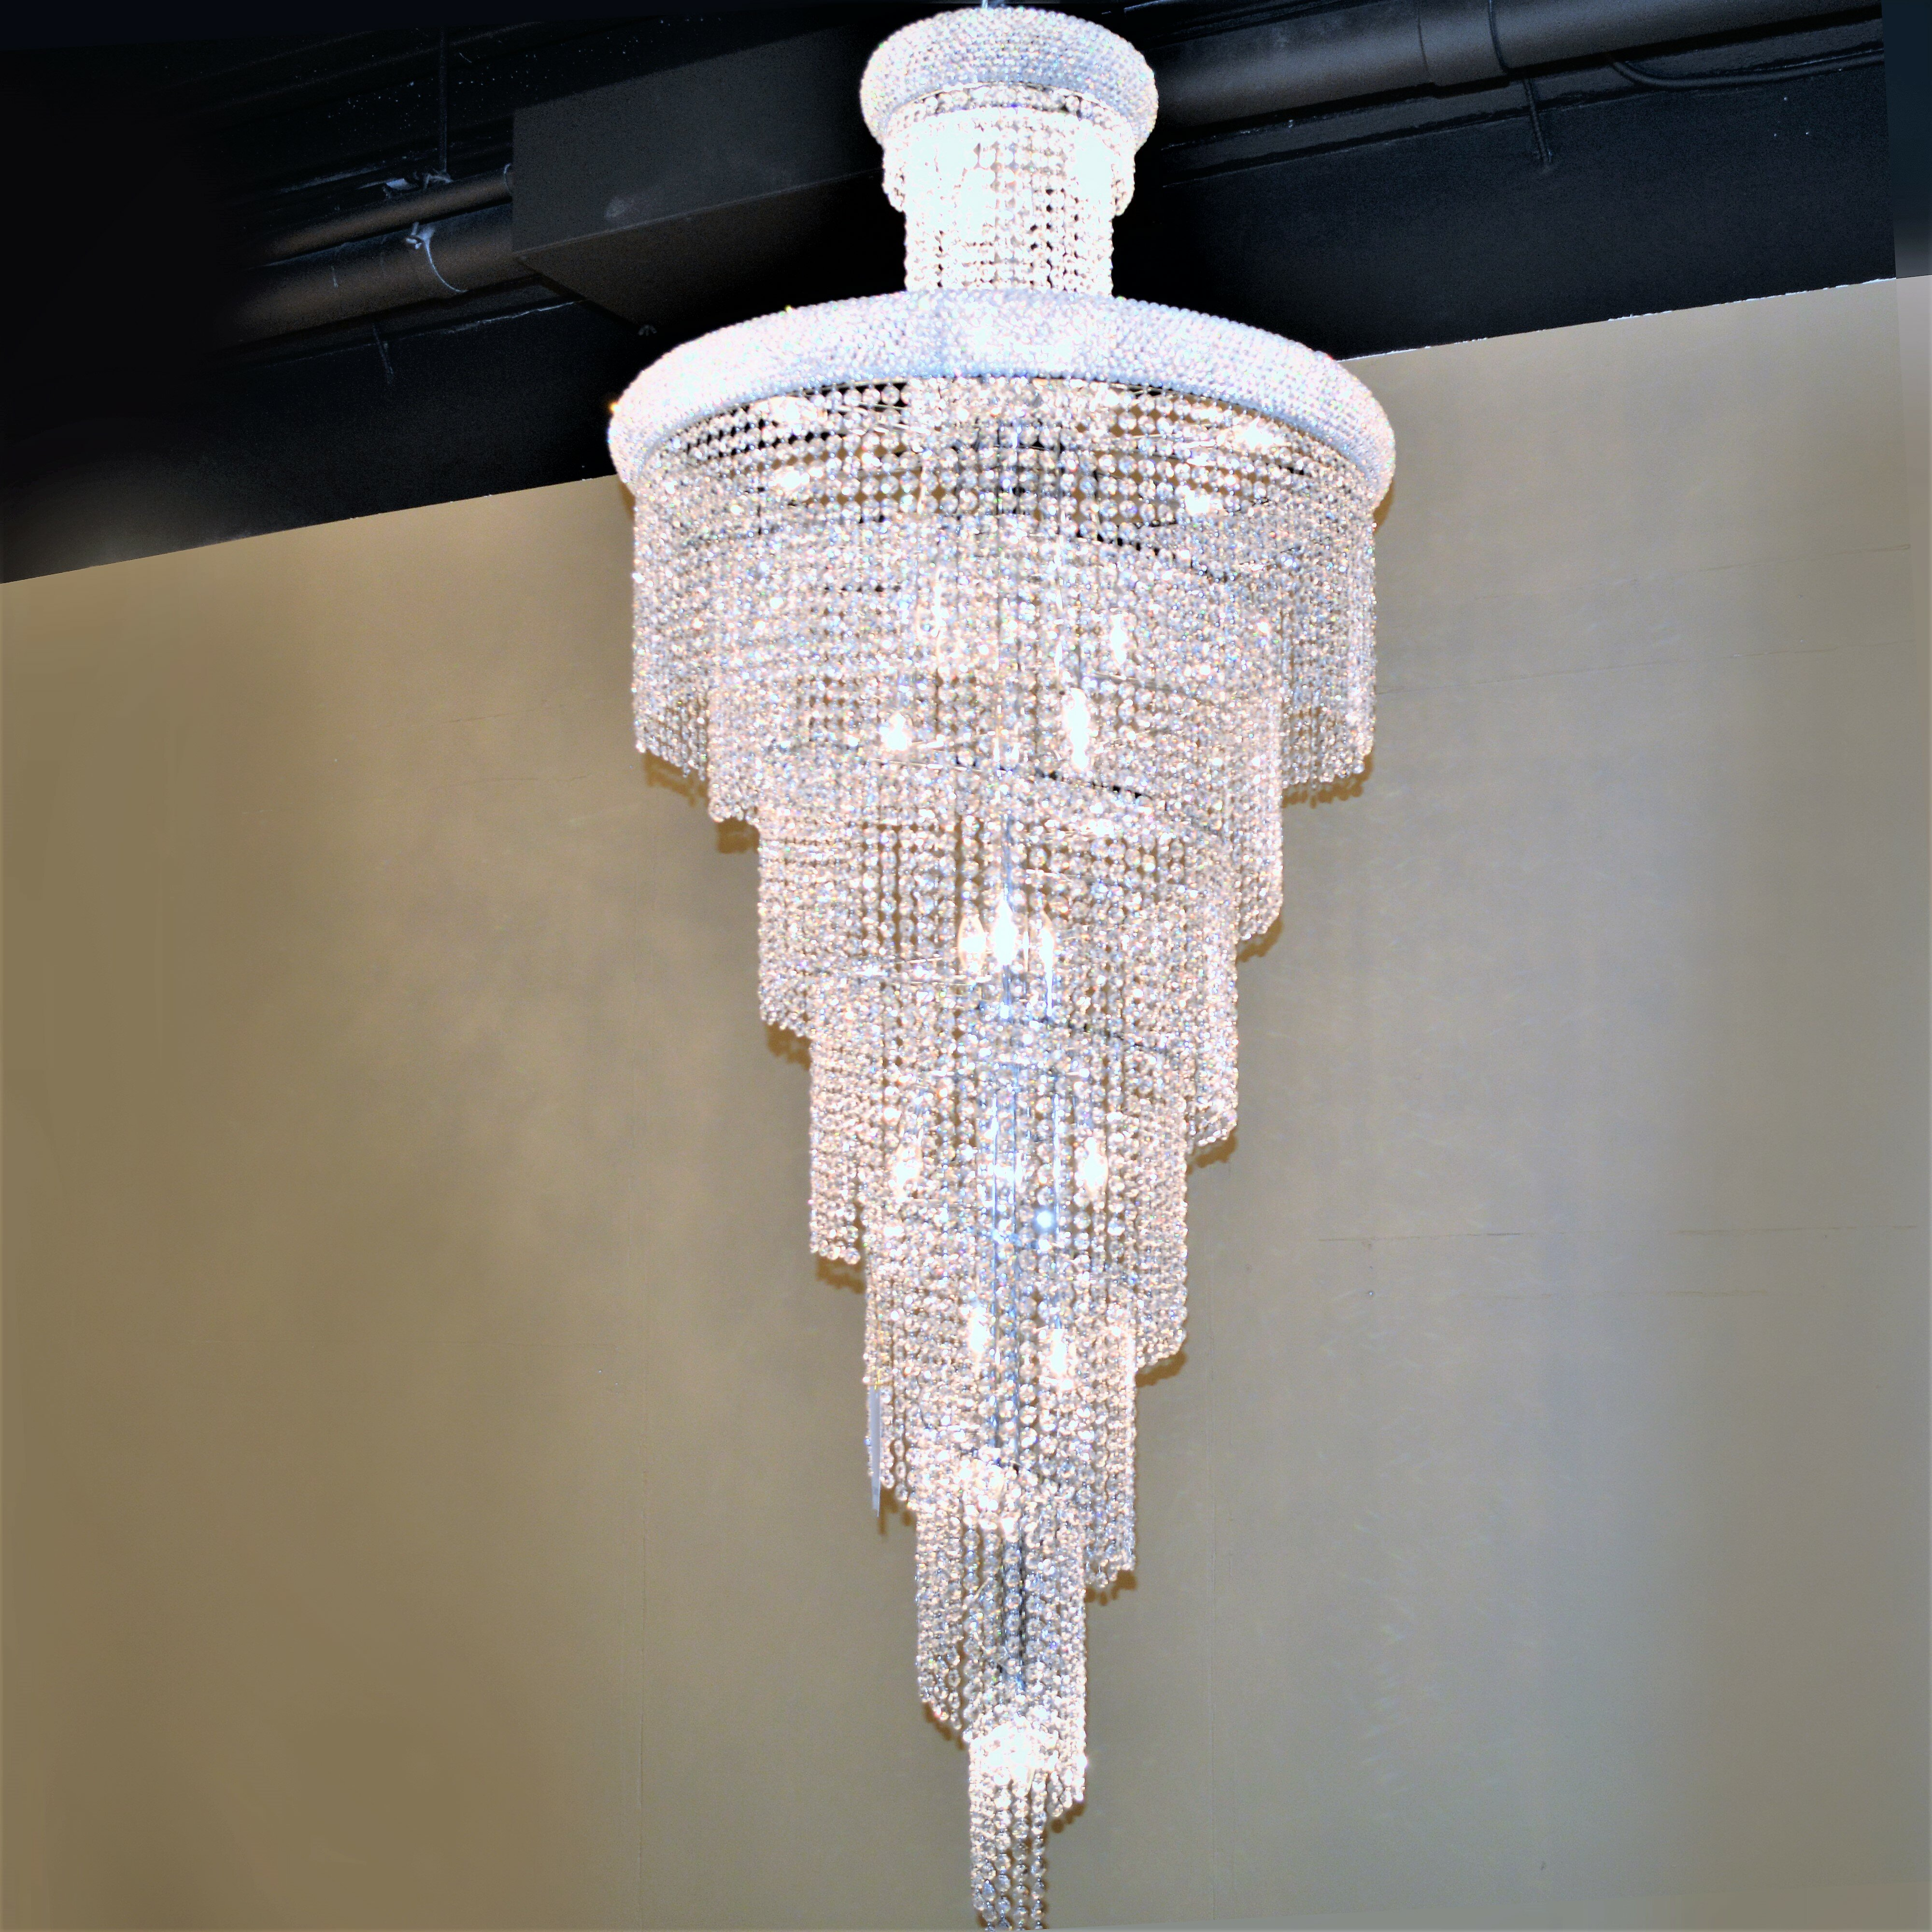 Lights & Lighting Chandeliers Lovely Large Spiral Crystal Chandelier Led Suspension Luminaire Lights For Living Room Chandelier Lighting Stairway Gold Led Chandelier Convenient To Cook